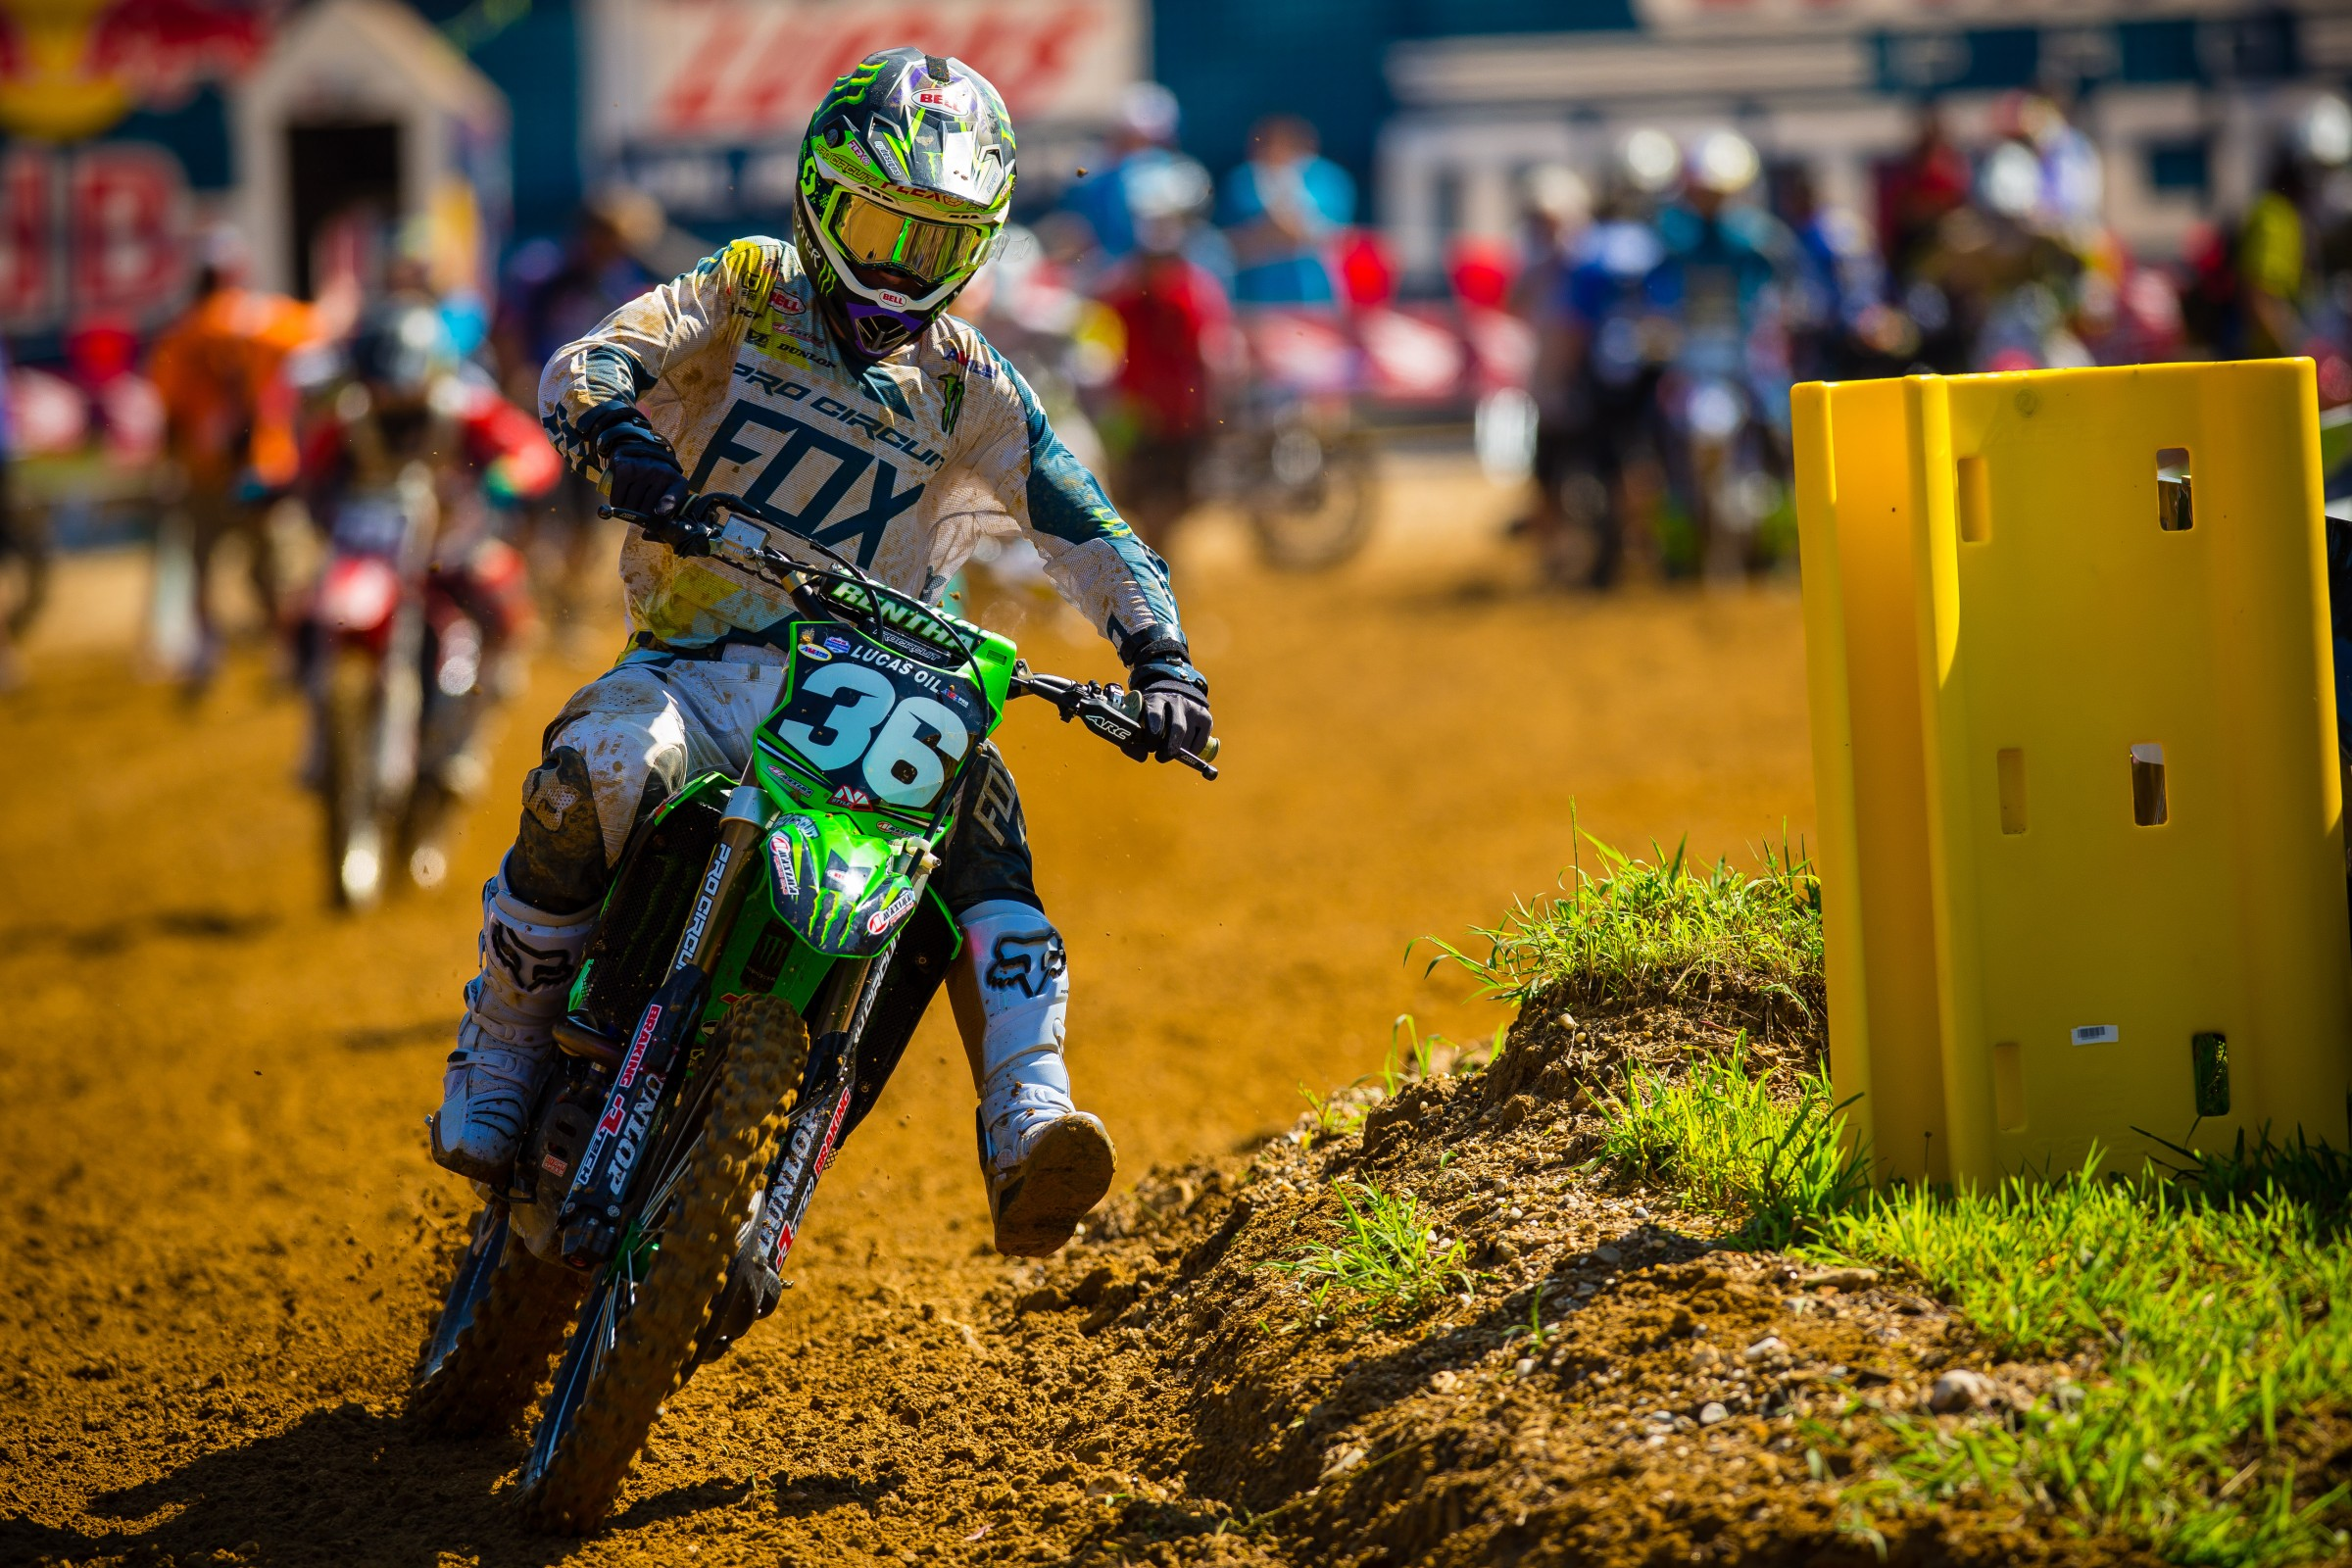 AC is in a good position to finish in third place in the 250 Class standings. It would be the best finish to a Lucas Oil Pro Motocross Championship of his career.